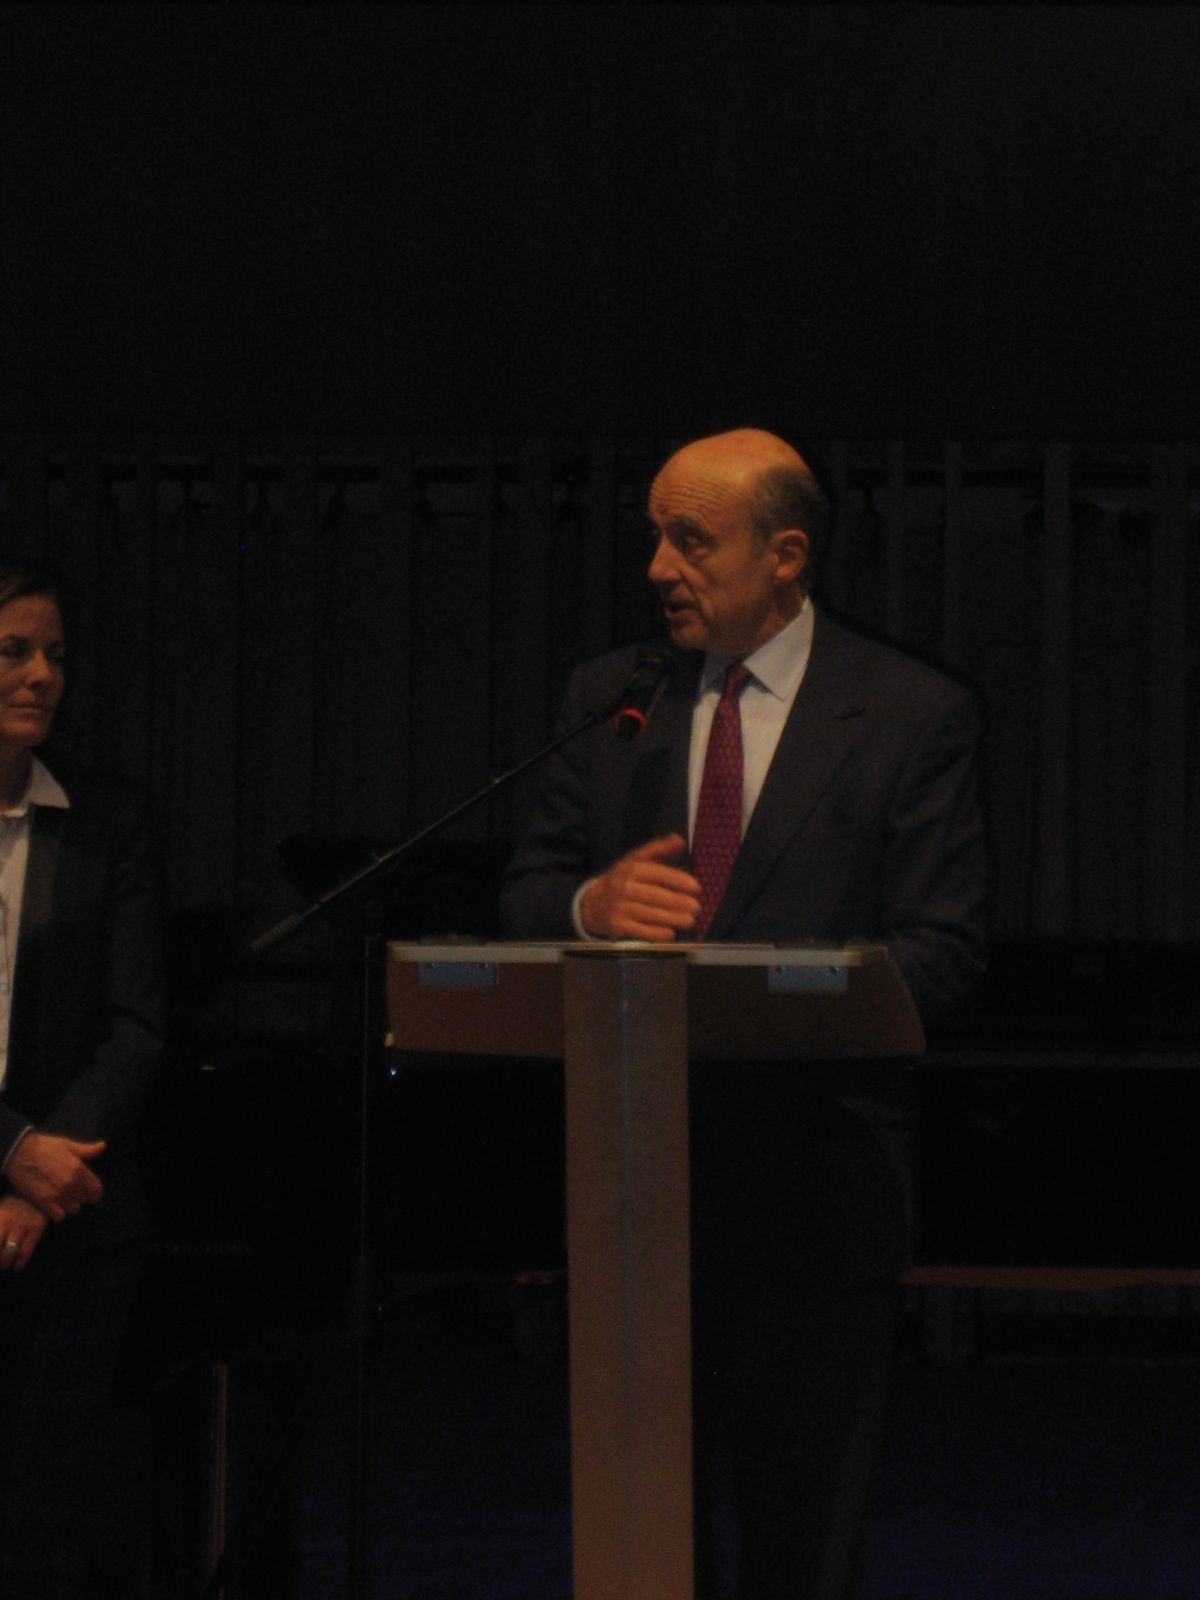 Le Pass Senior, l' Auditorium de Bordeaux, M. Alain Juppé maire de Bordeaux